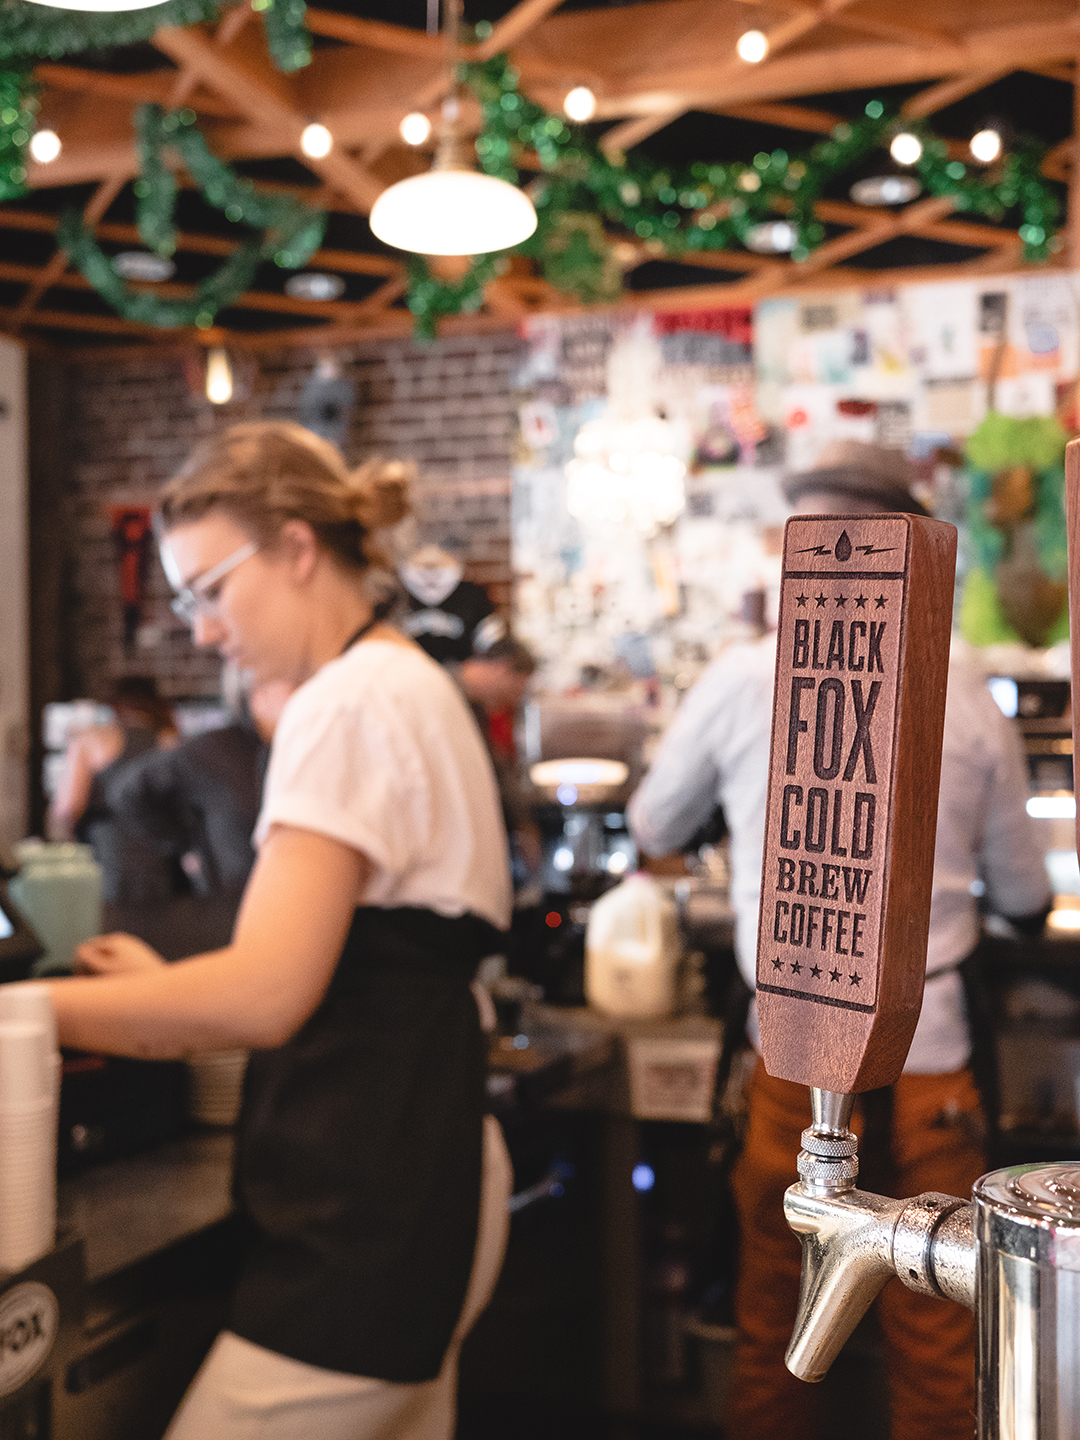 We've got Black Fox Cold Brew on tap